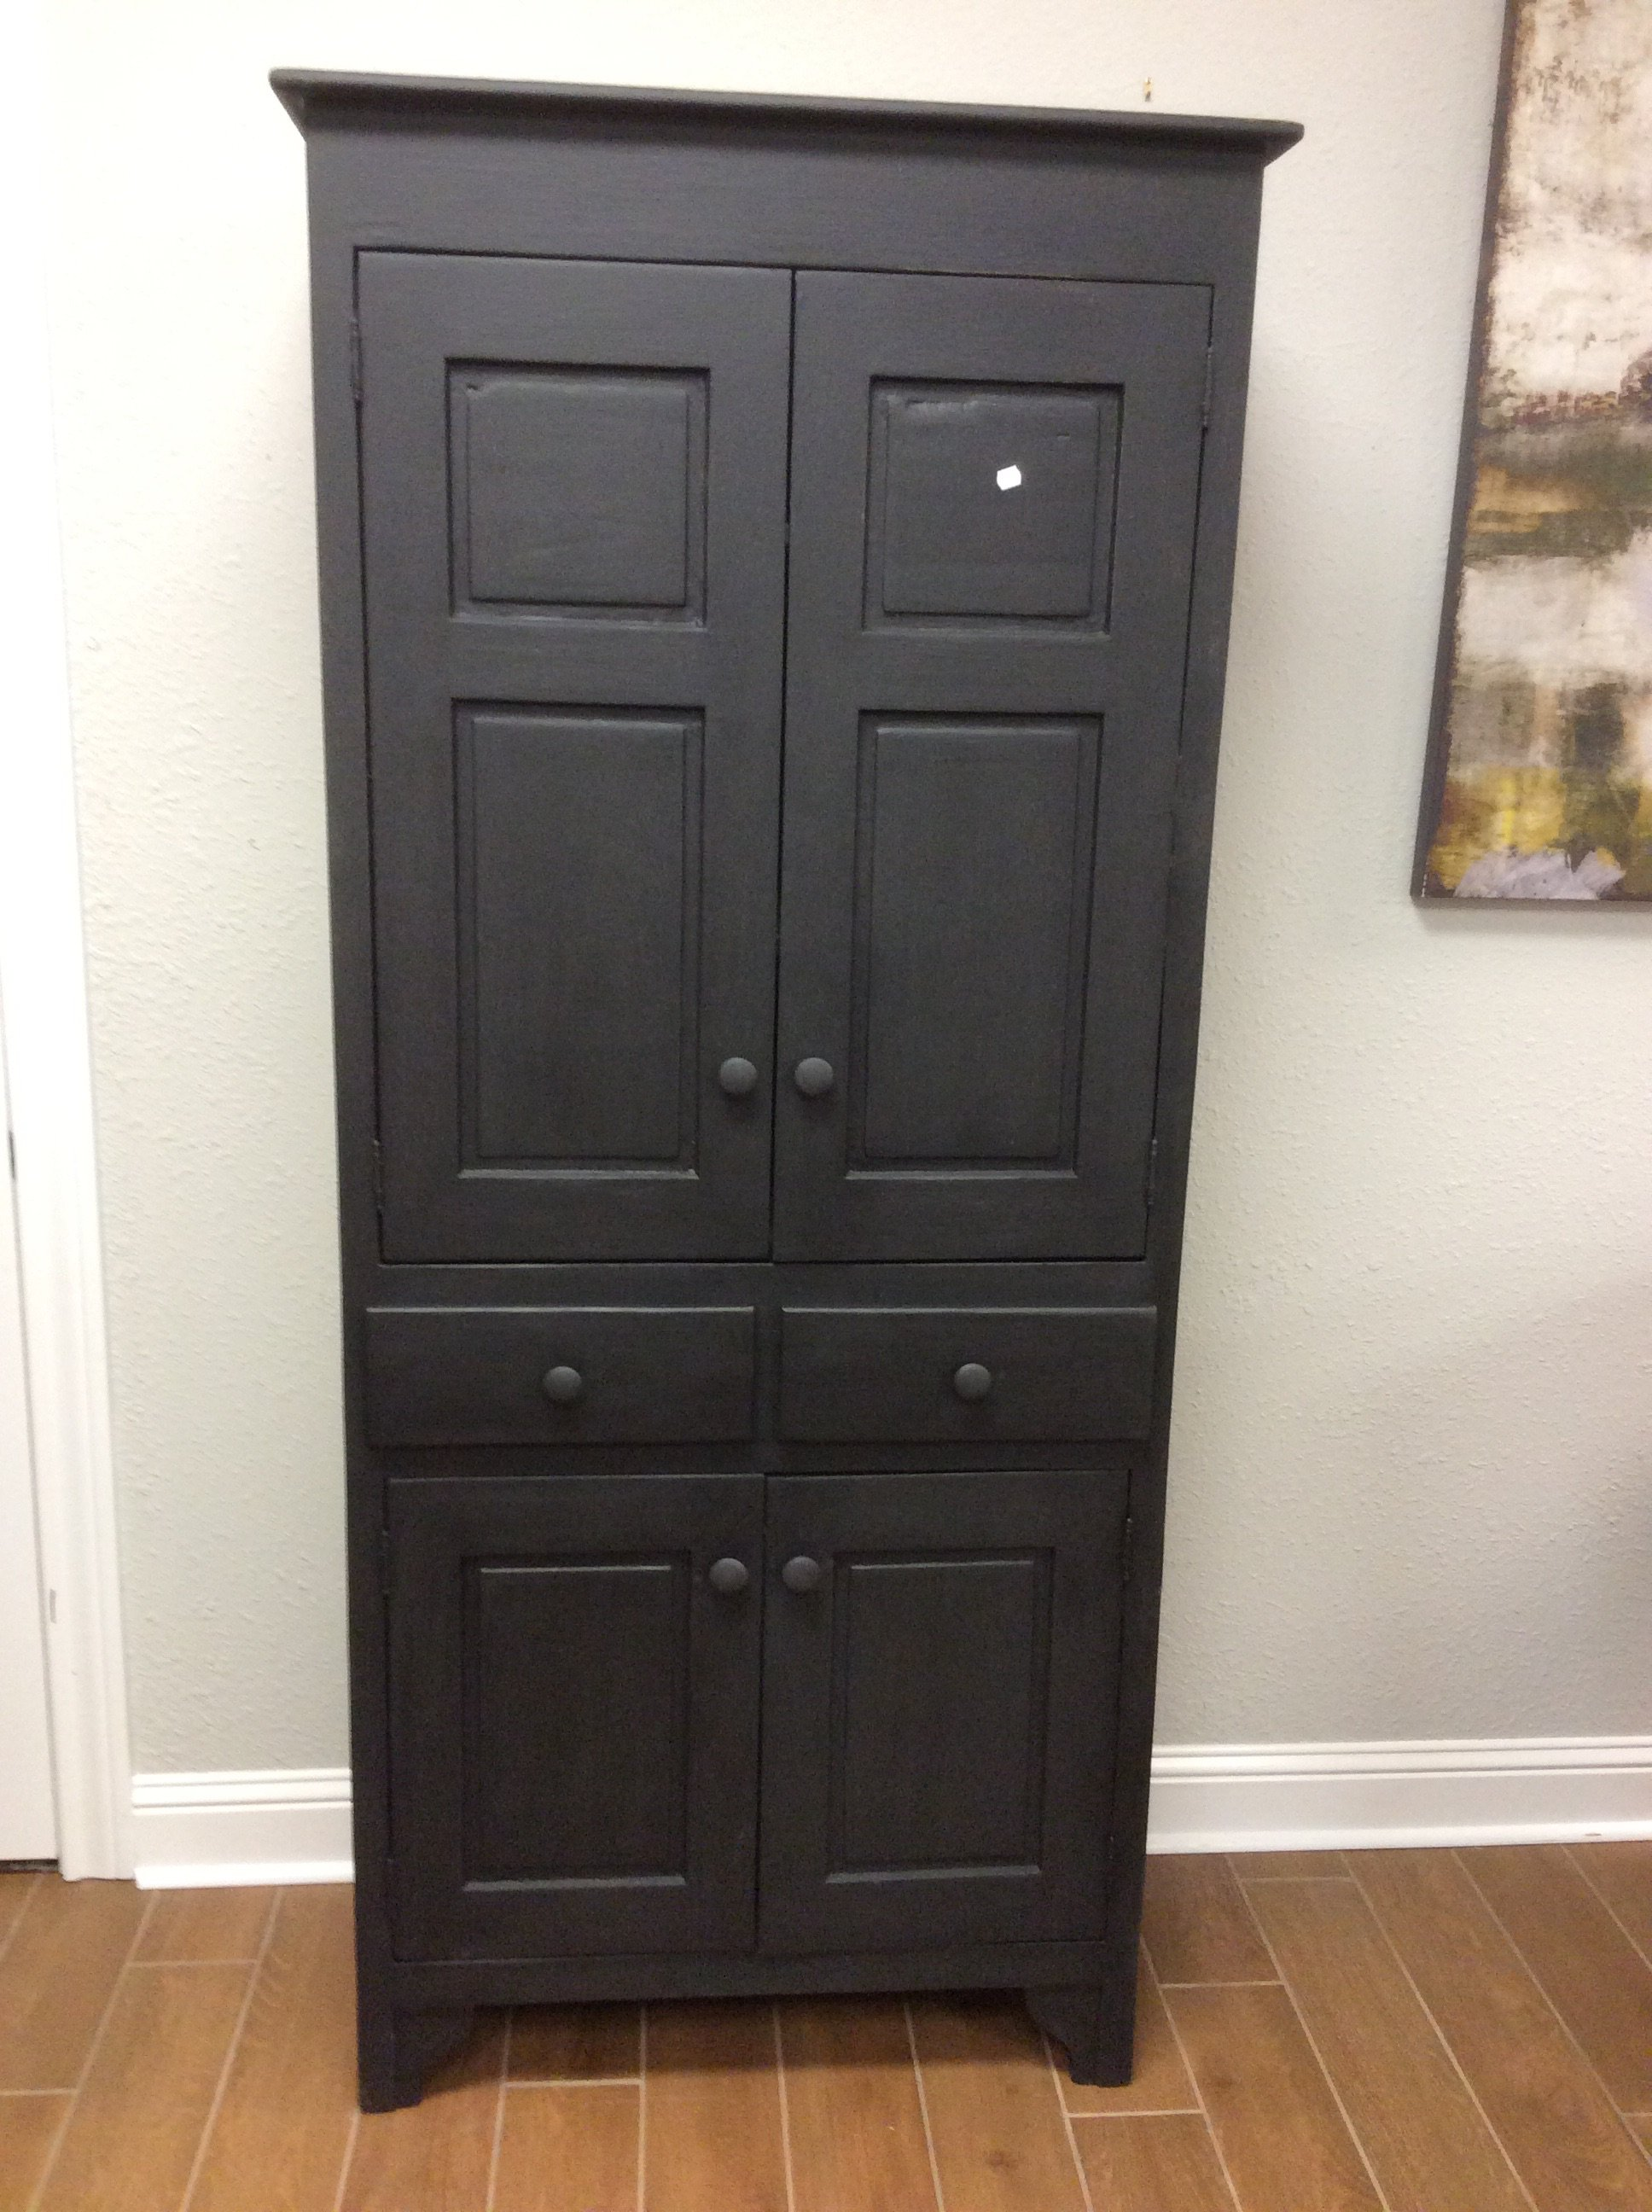 "Tall at 79"" and painted black, this cabinet may be the focal point of the room. It features alot of storage space with adjustable shelving  and 2 drawers."